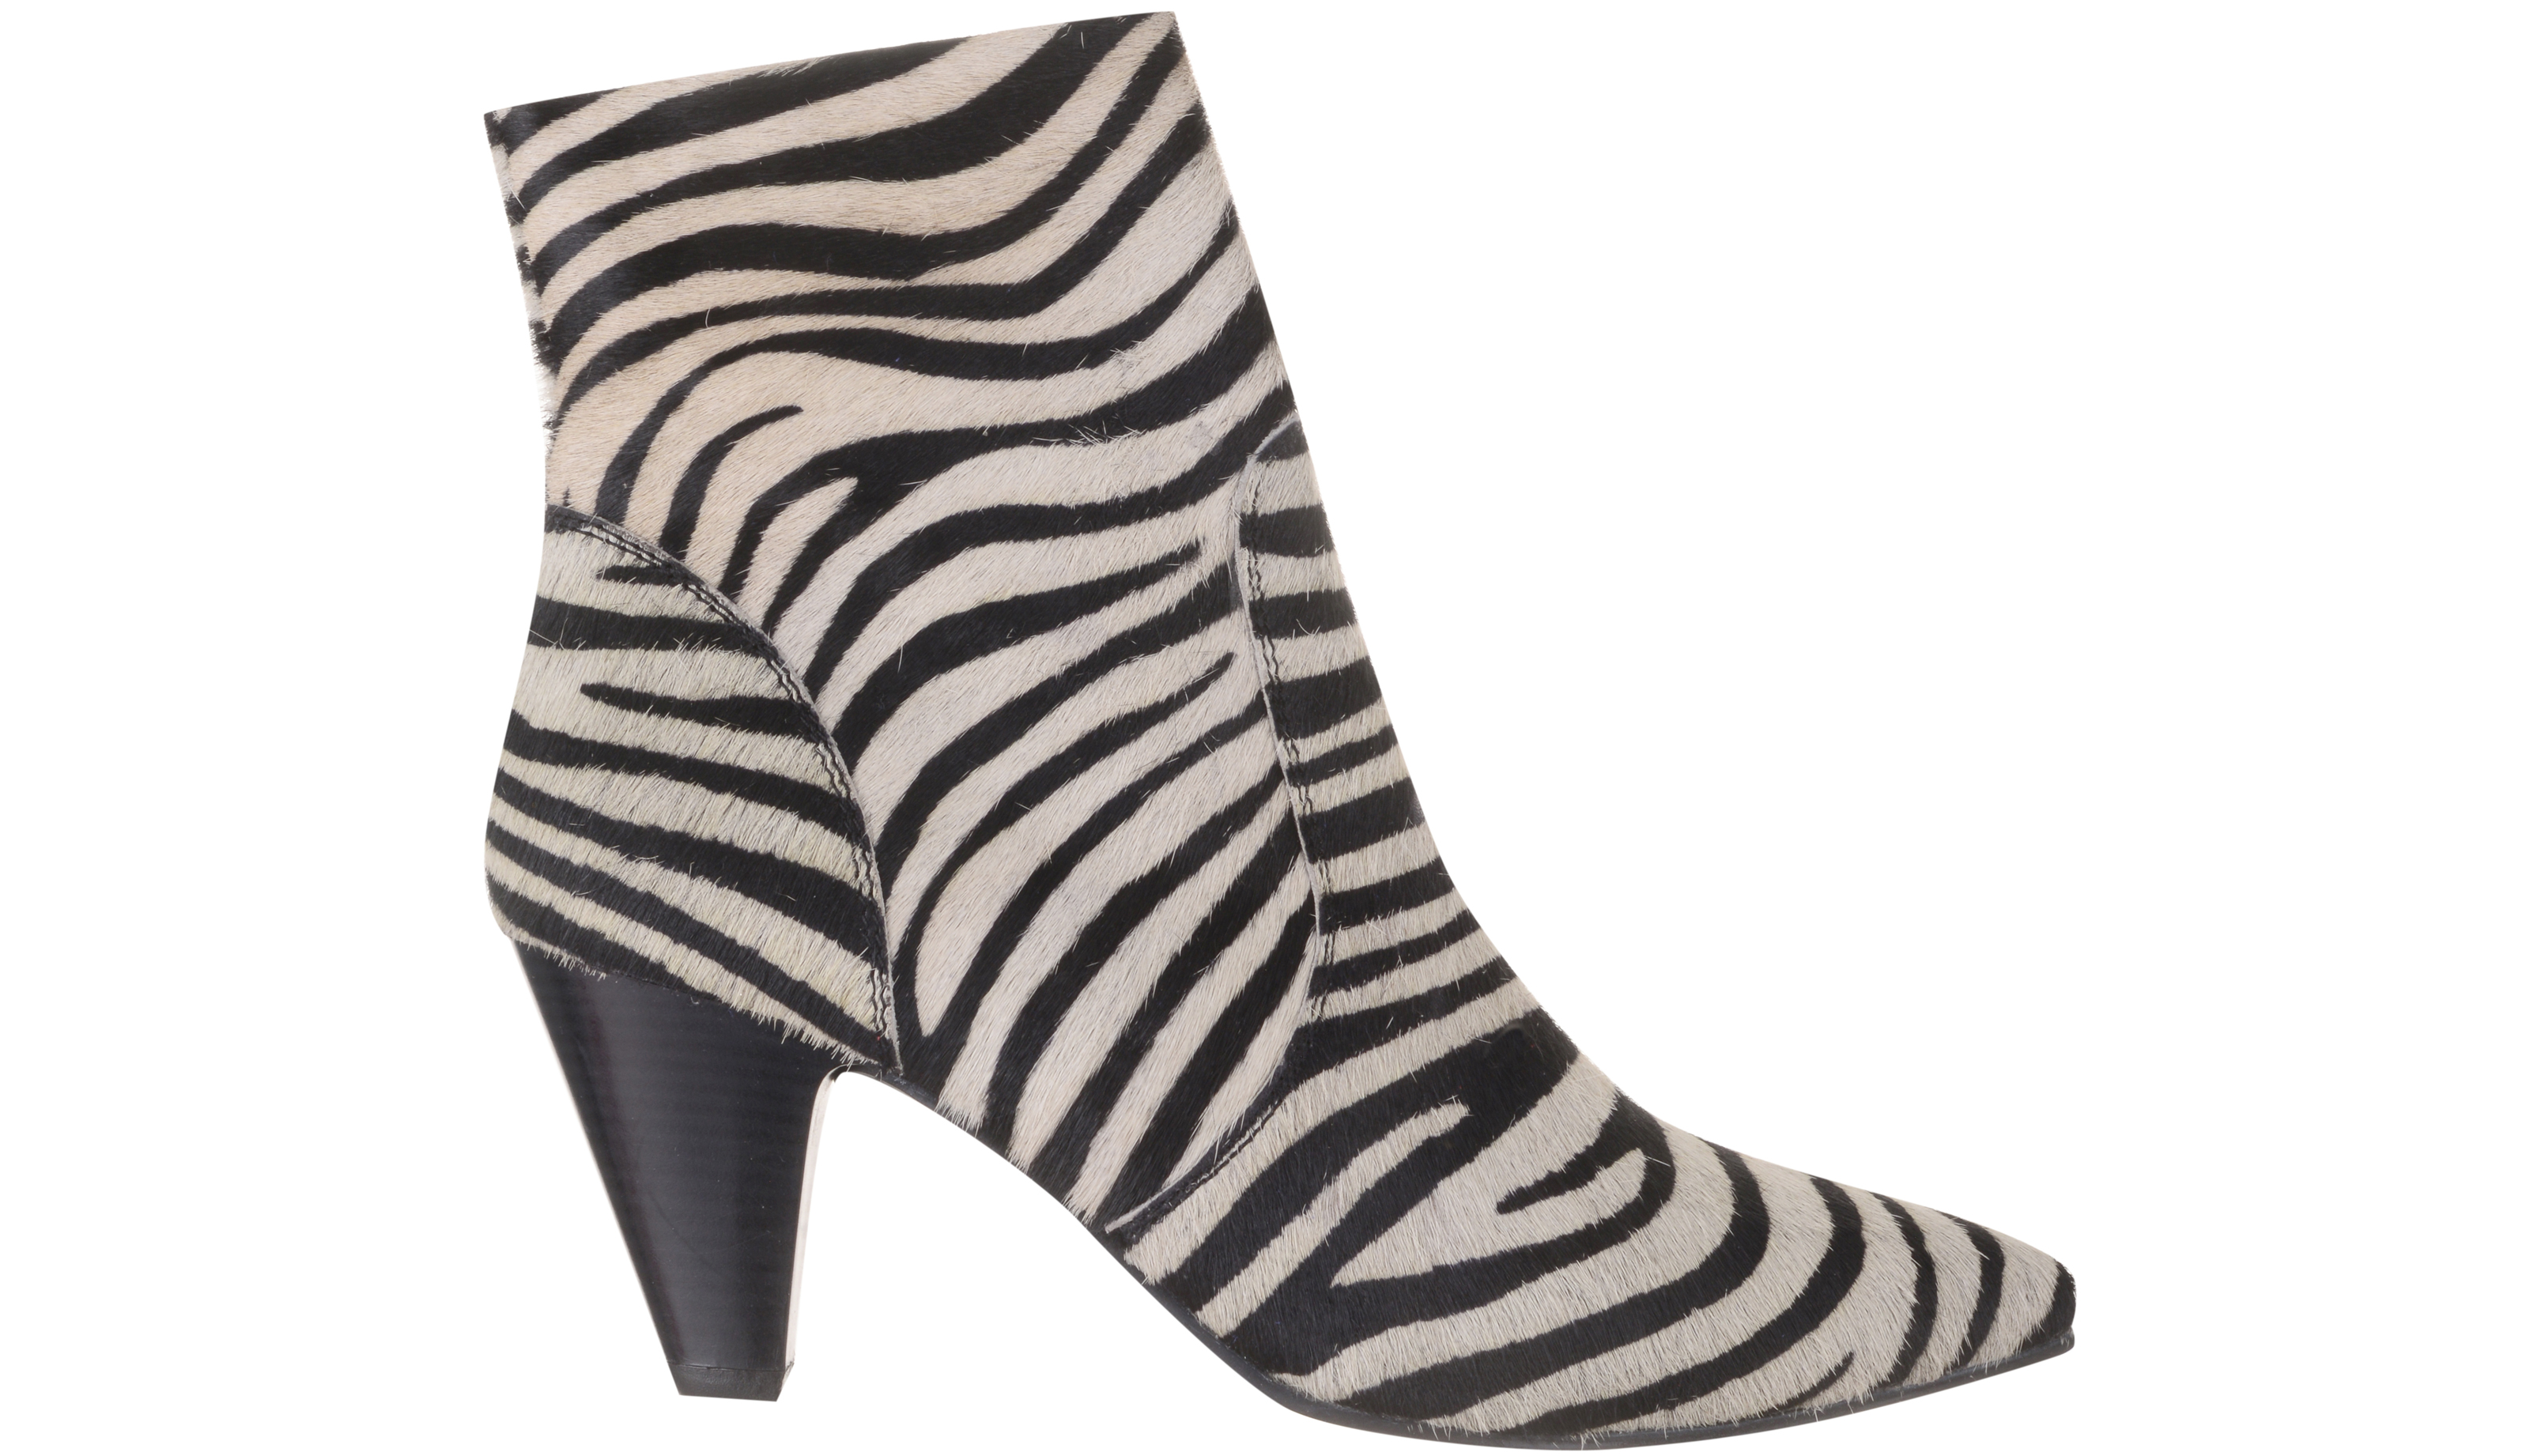 Dorothy Perkins Multi Coloured Zebra Design Leather Attitude Ankle Boots